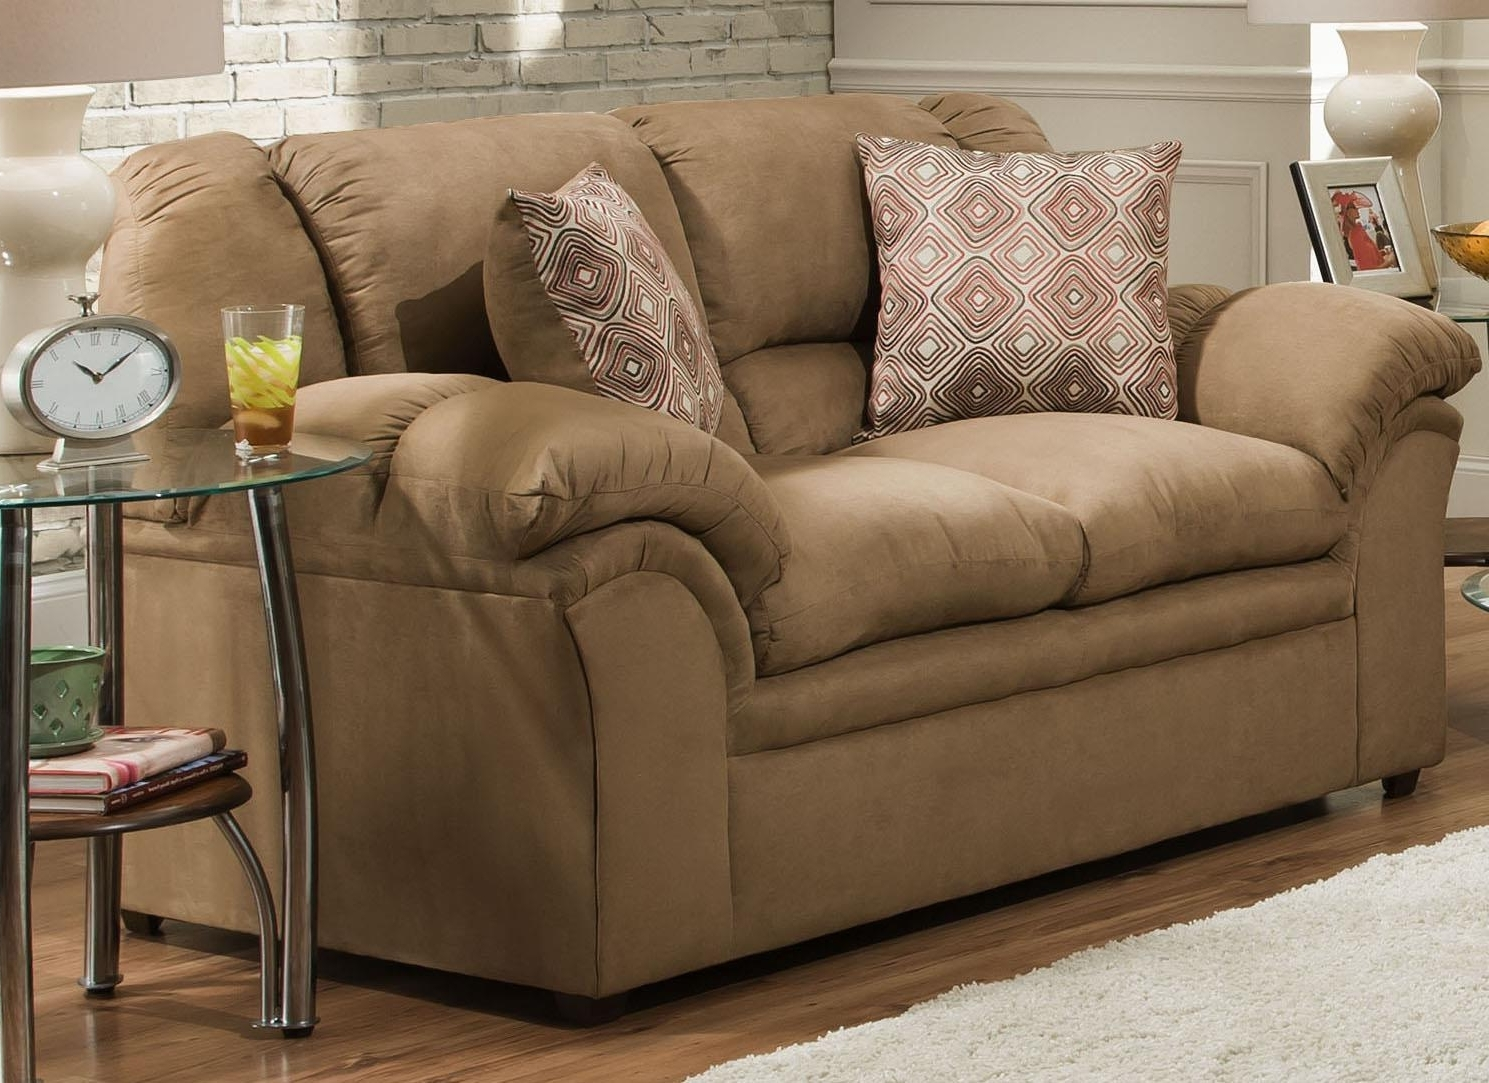 Jacksonville Nc Sectional Sofas With Regard To Most Popular United Furniture Industries 1720 Love Seat (View 11 of 20)